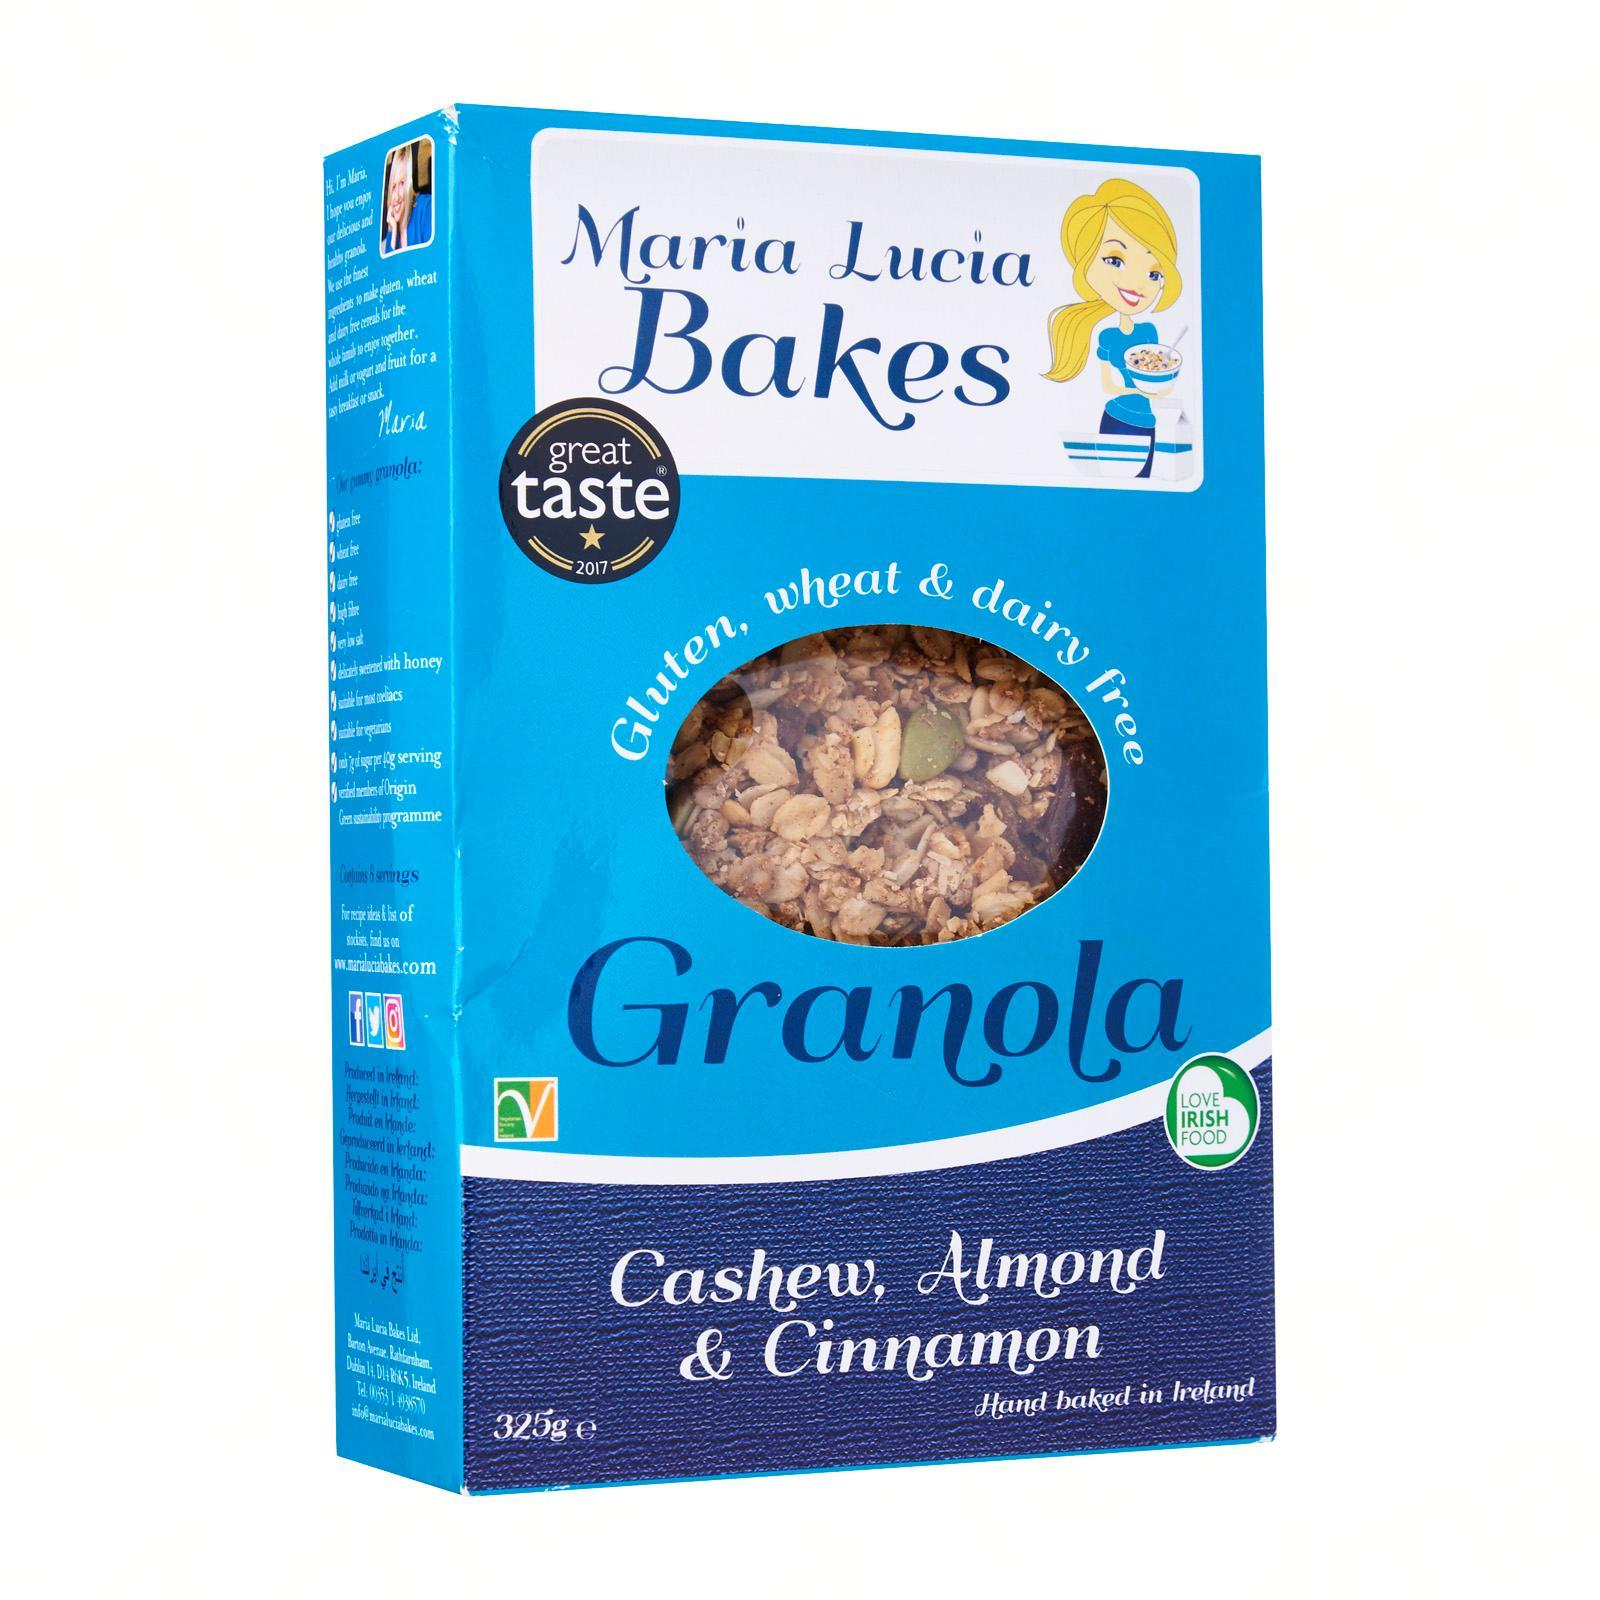 Maria Lucia Bakes Gluten-Free Cashew Almond And Cinnamon Granola - By Inish Bia